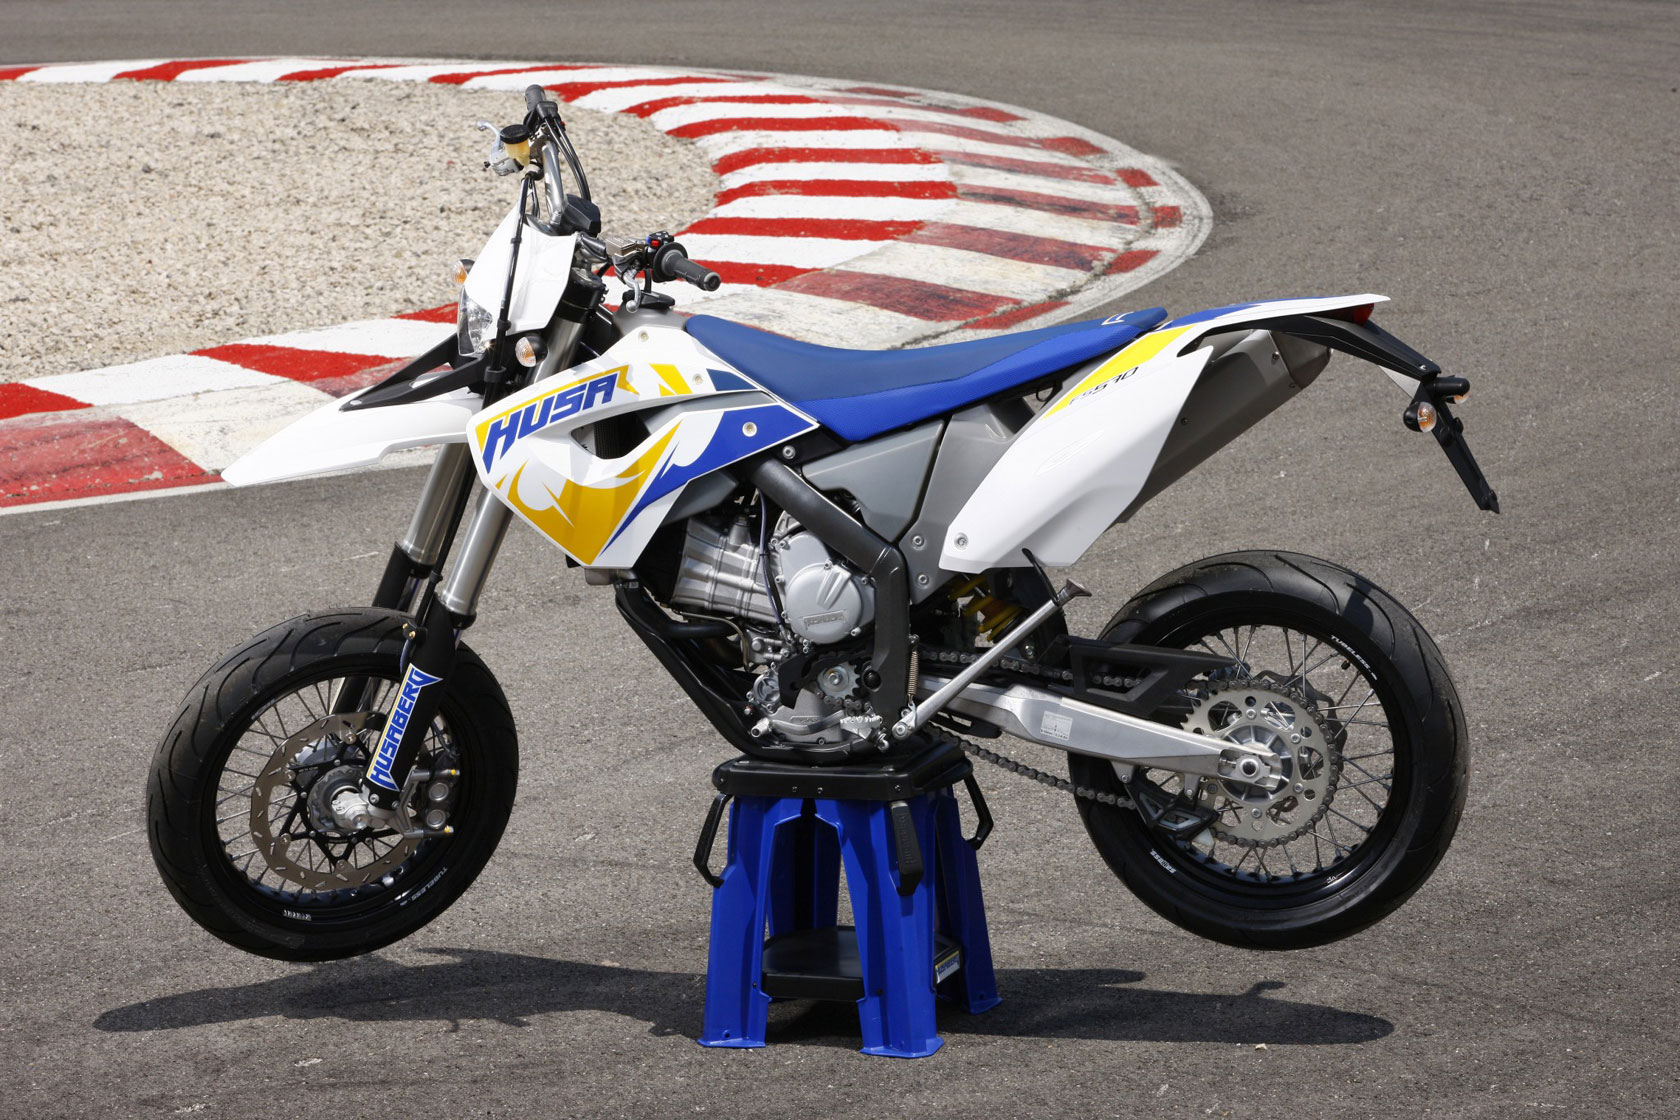 Husaberg Super motard #2